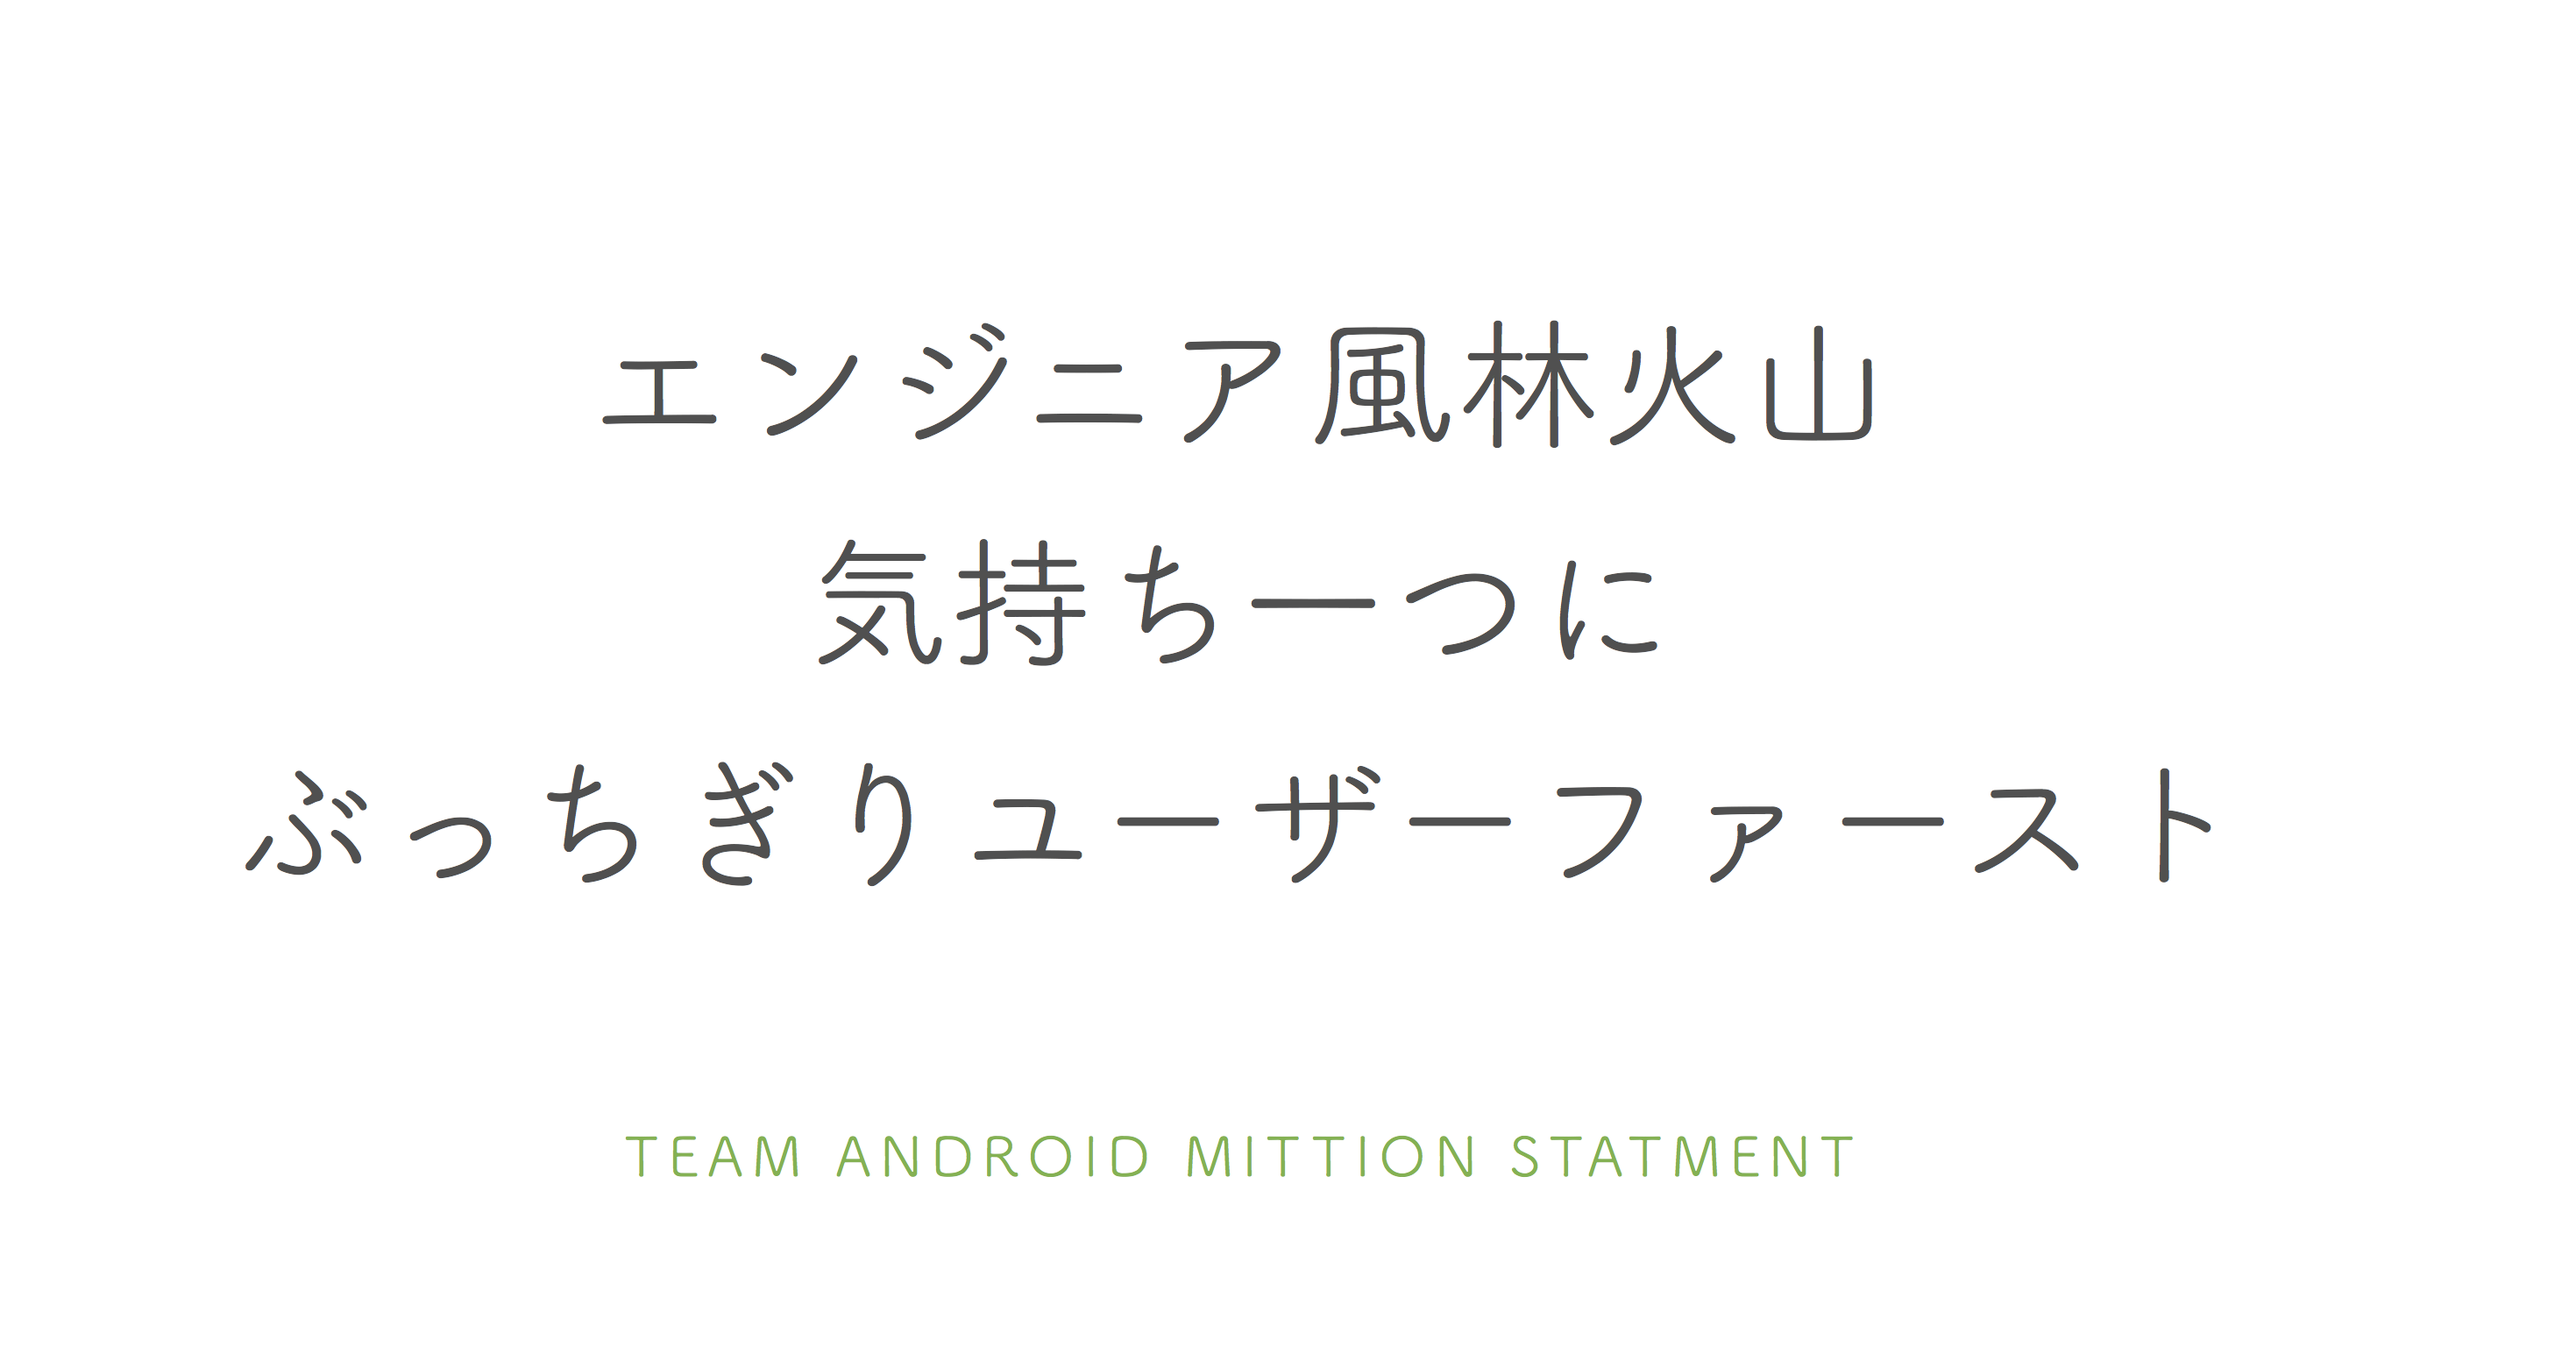 Android Team Mission Statement